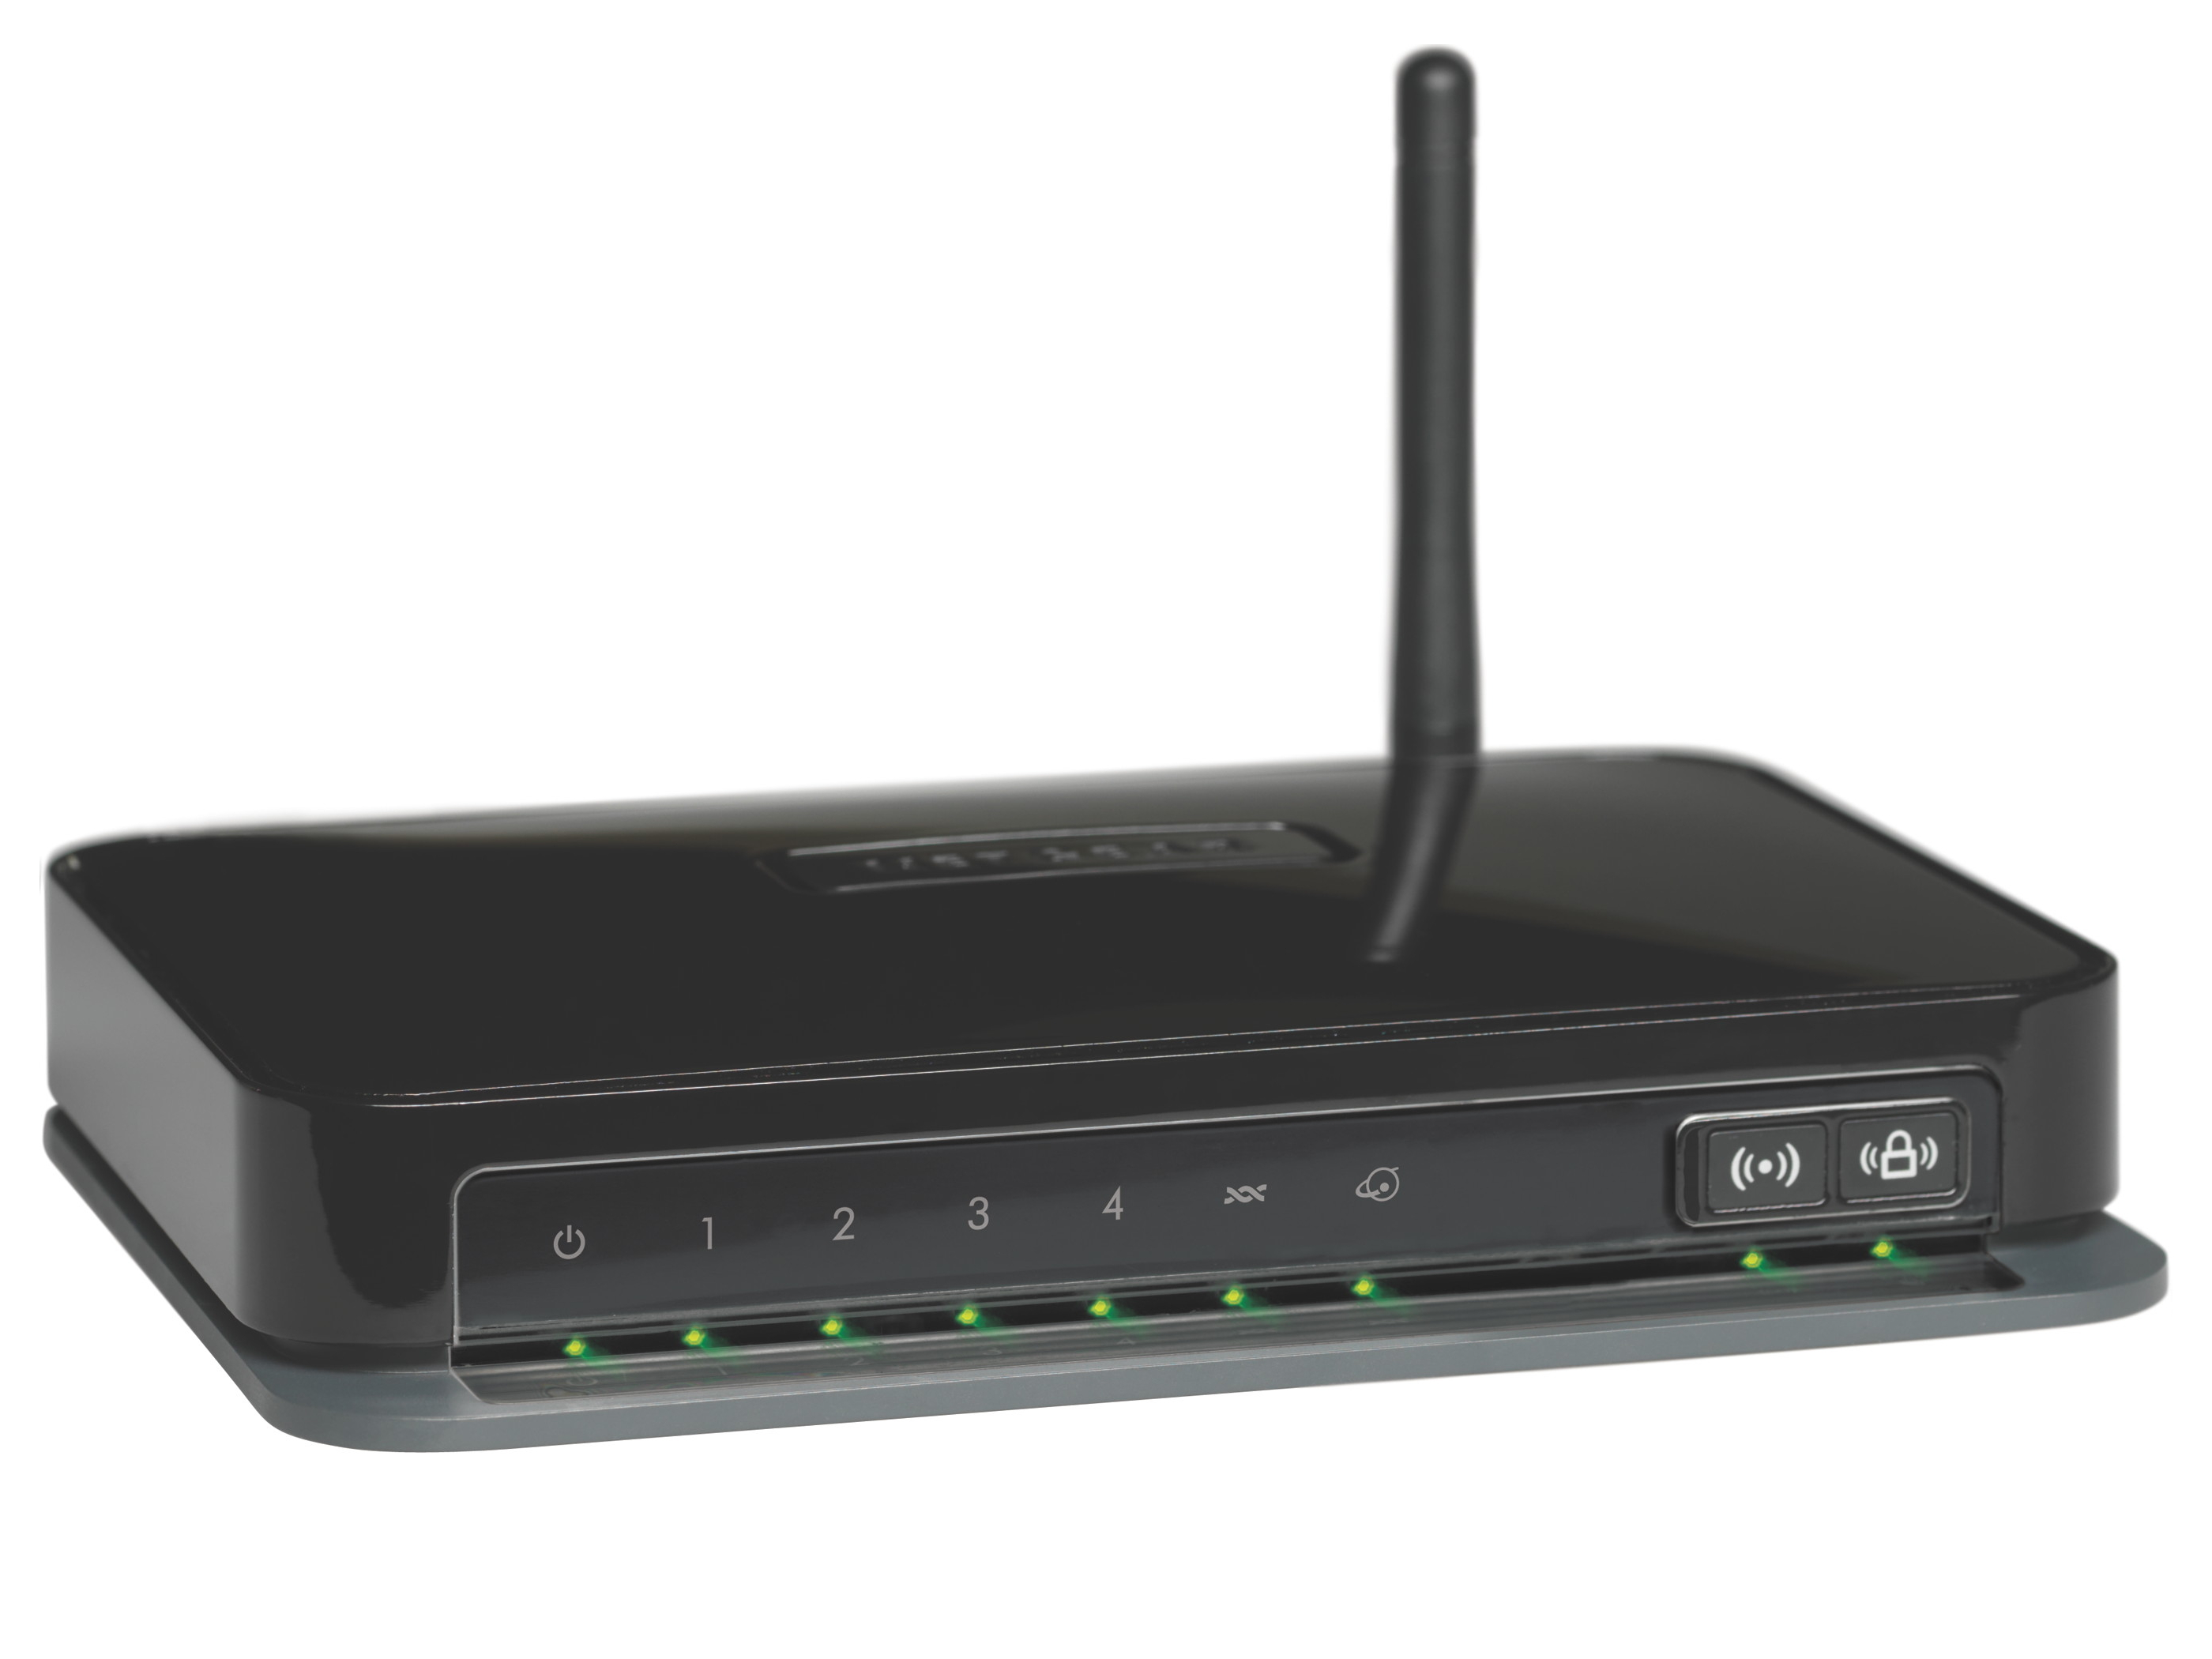 NETGEAR WIRELESS - N150 ROUTER DRIVERS - photo#2